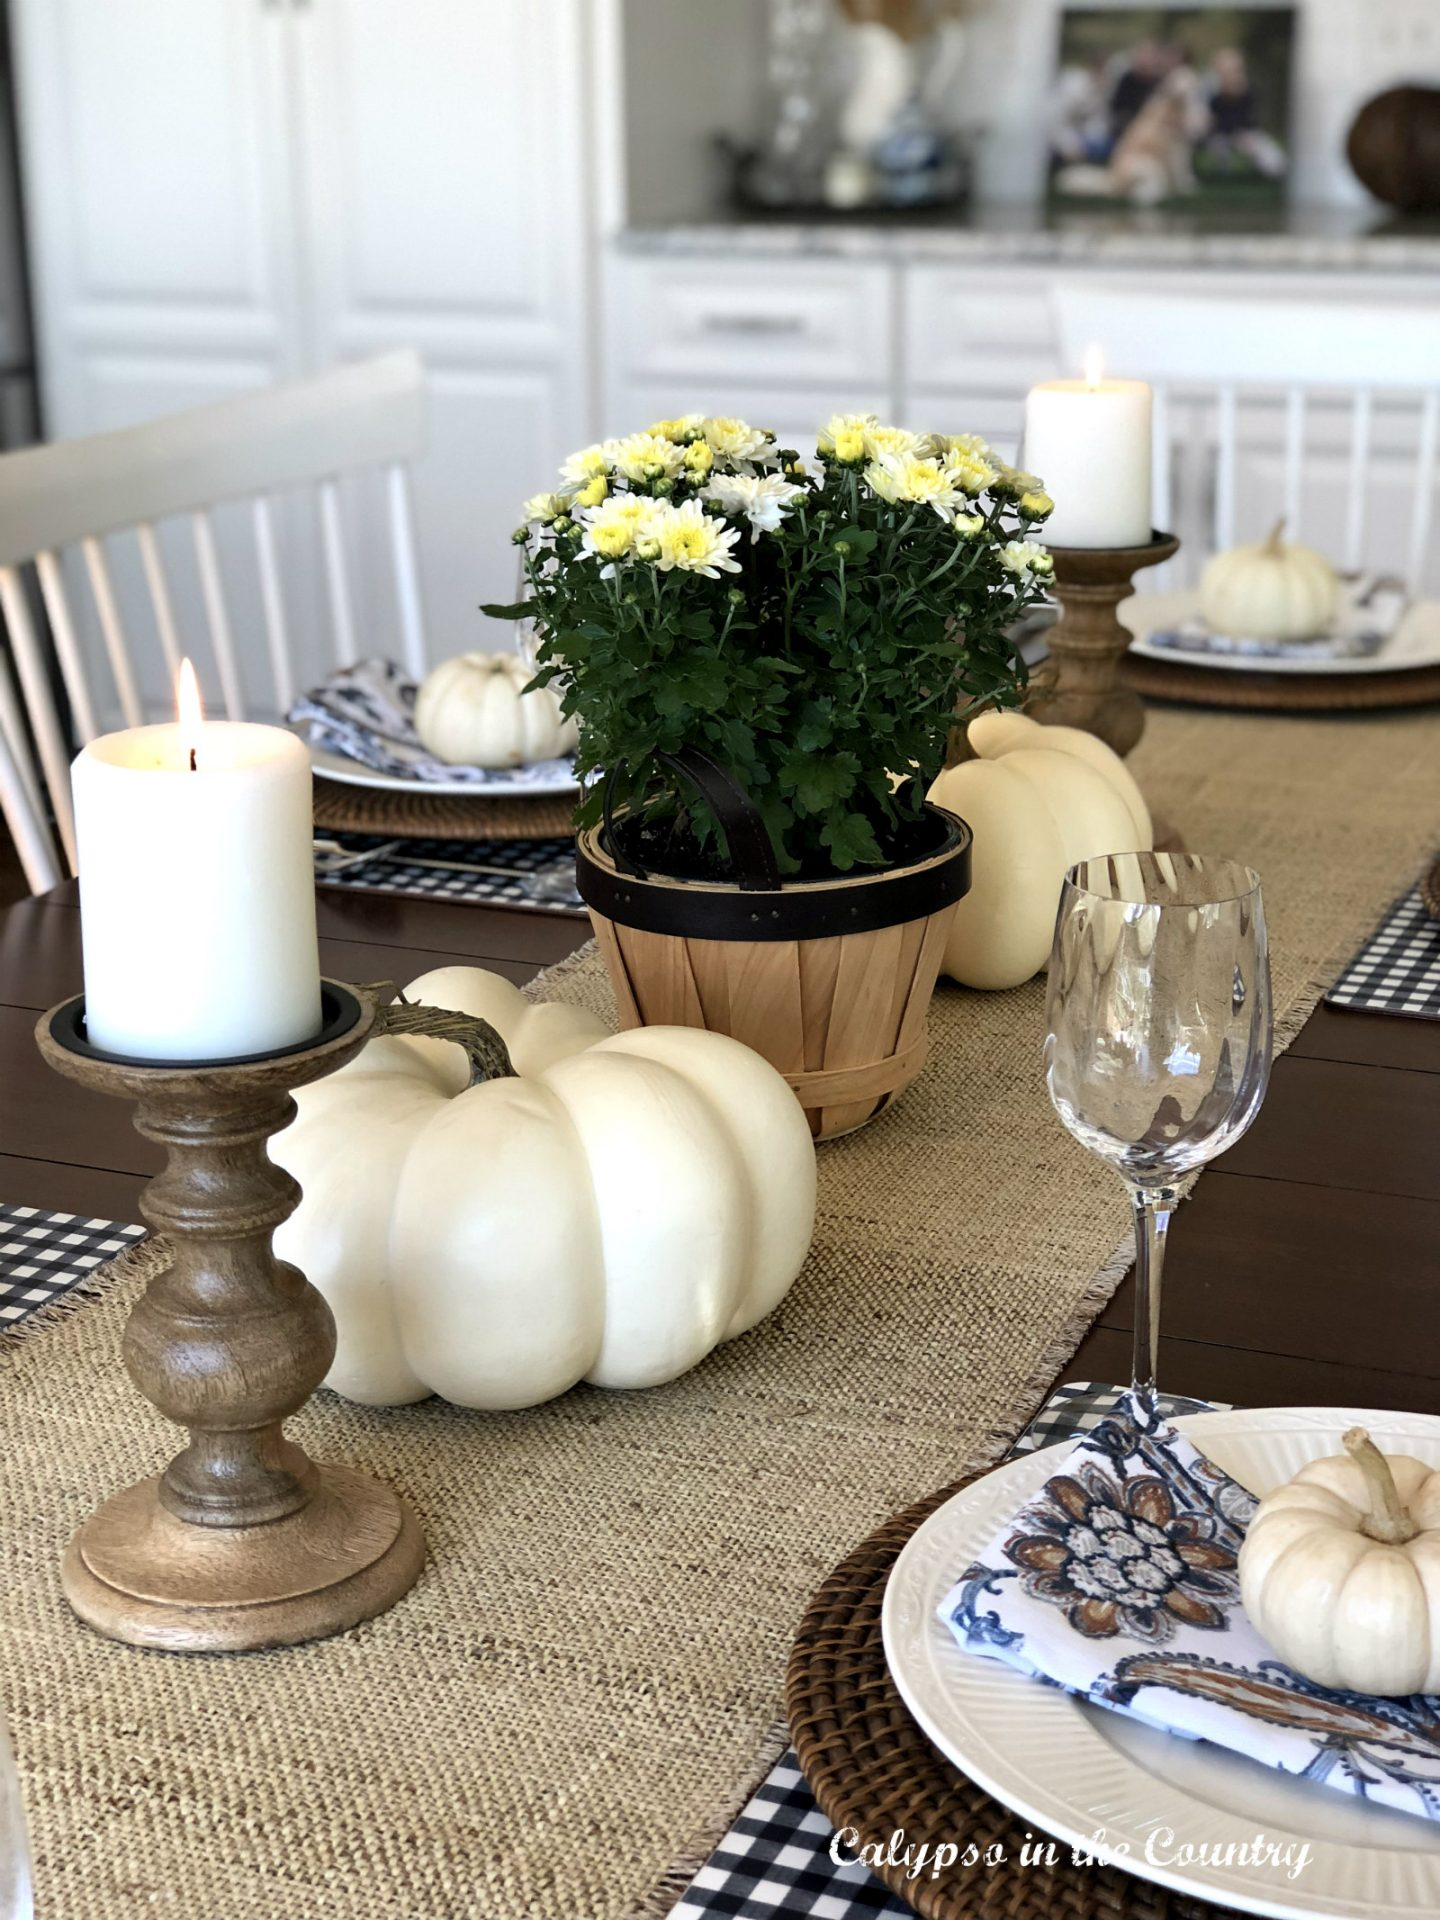 White pumpkins and mums on kitchen table for fall